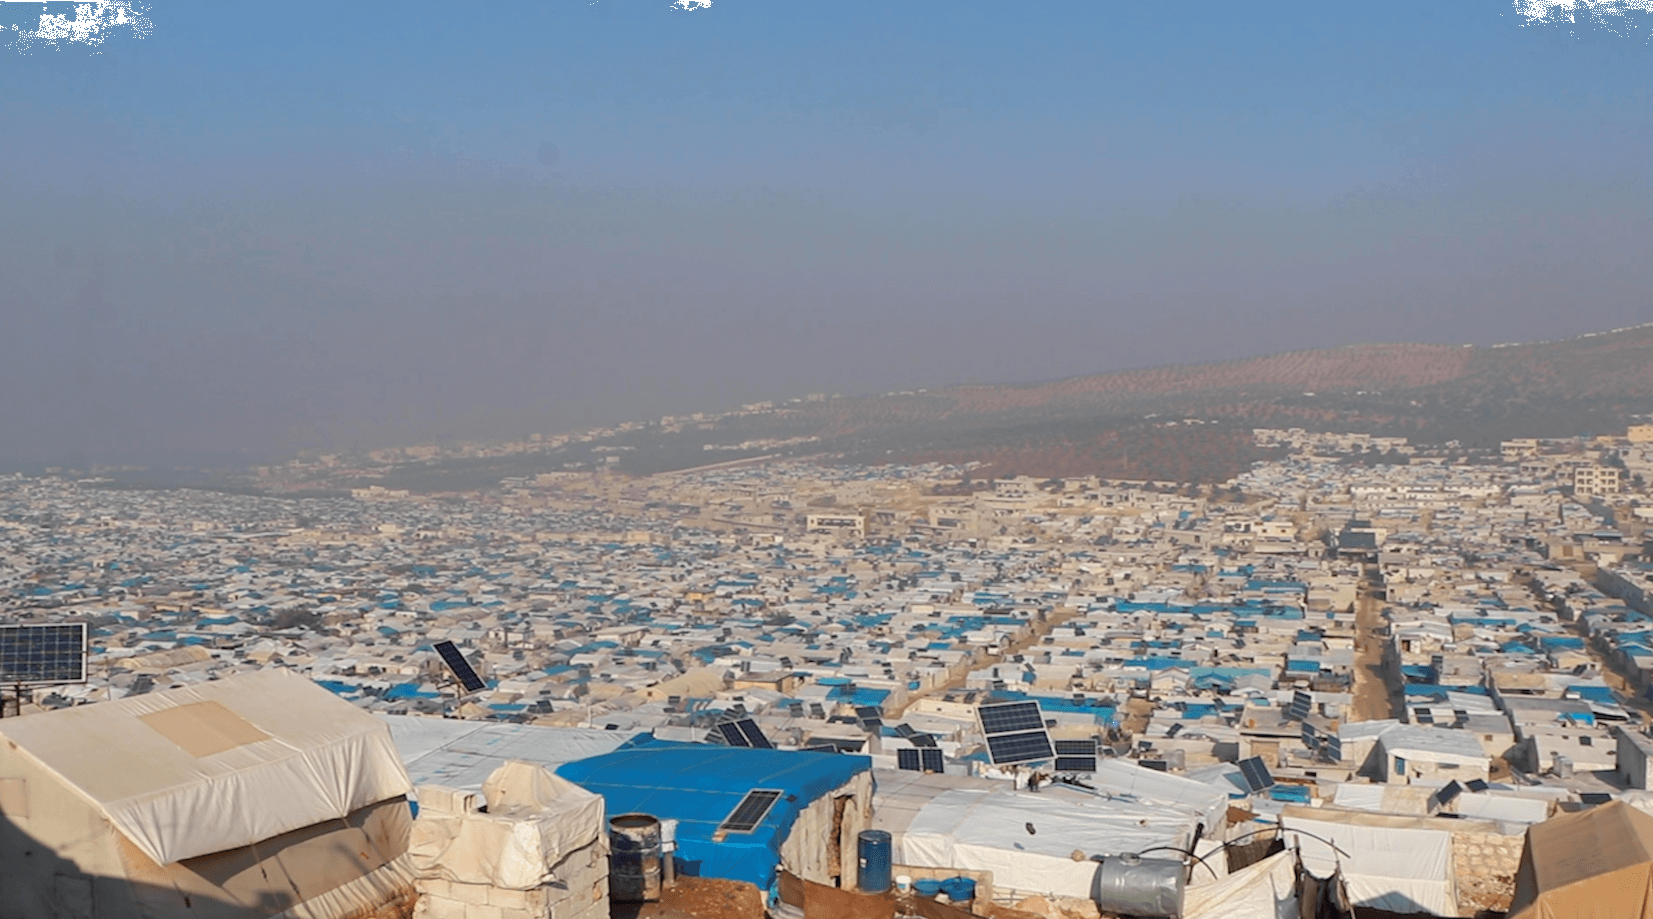 A View of Syrian Camp